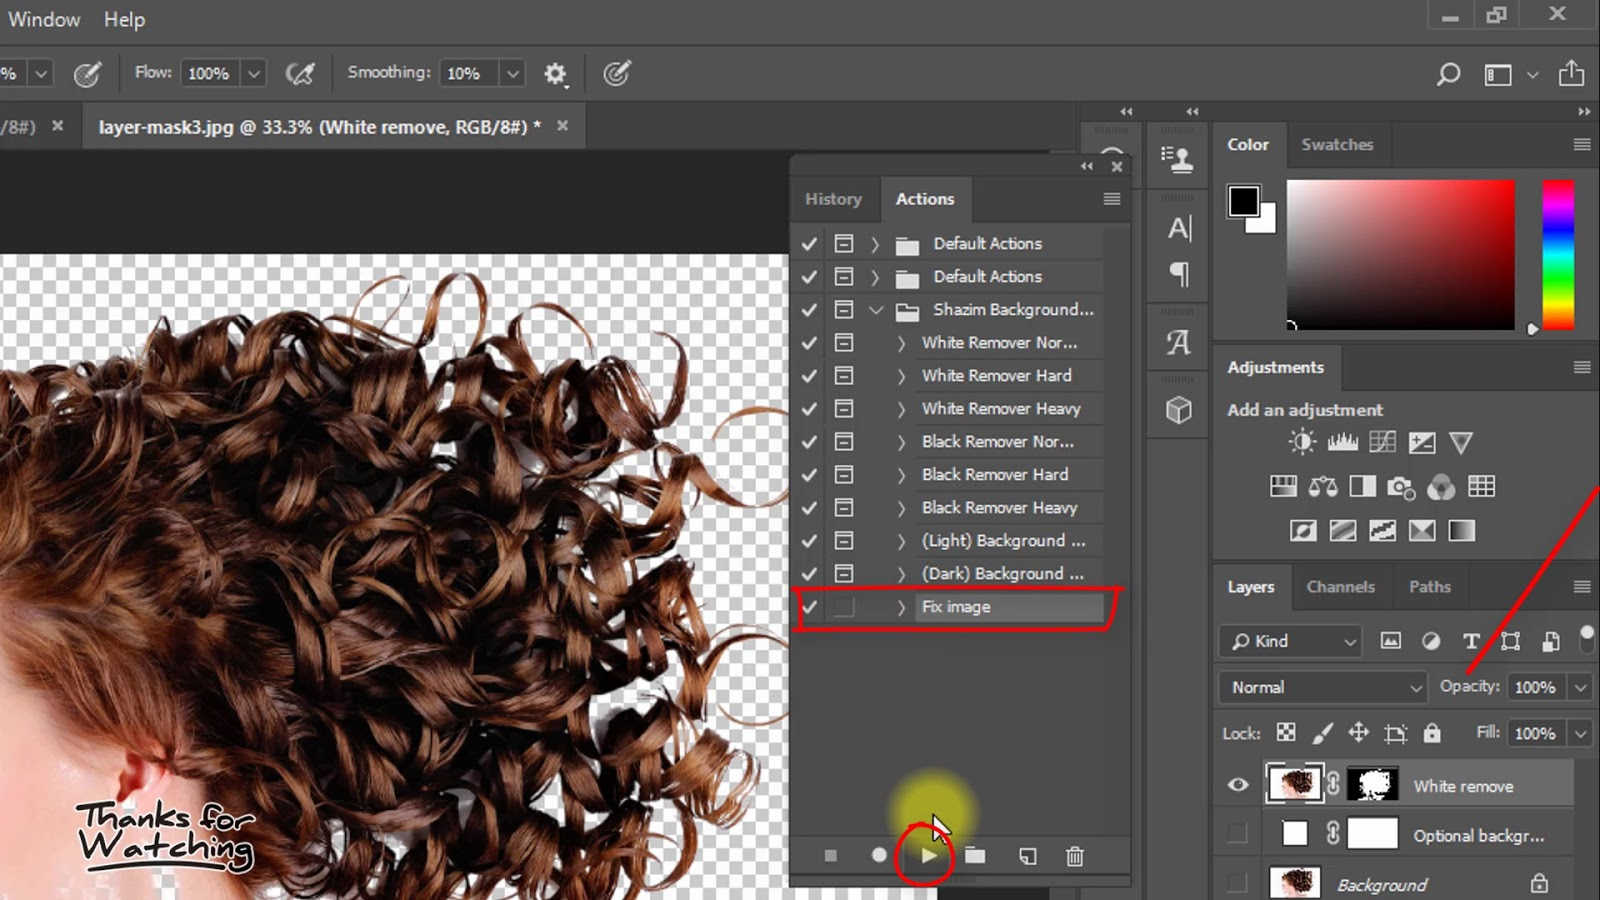 1 click Automatic Background Remove Photoshop Actions 5